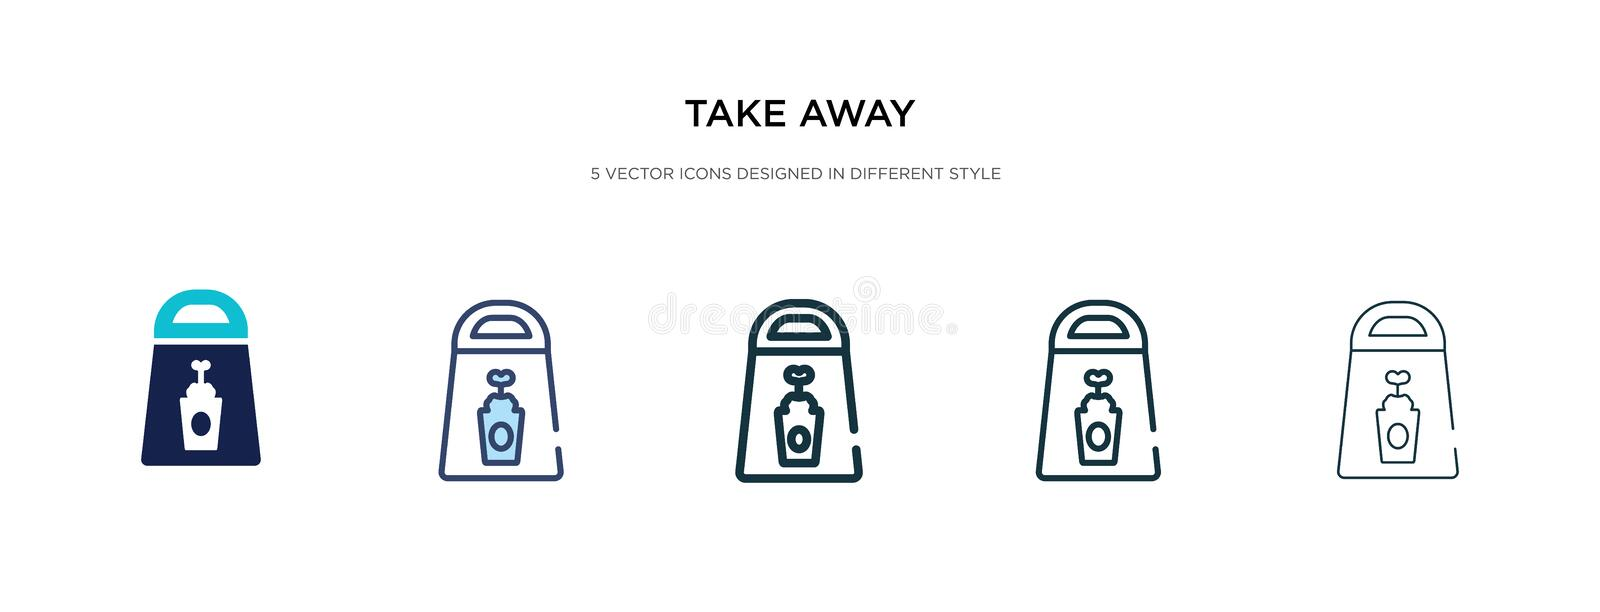 Take away icon in different style vector illustration. two colored and black take away vector icons designed in filled, outline, royalty free illustration